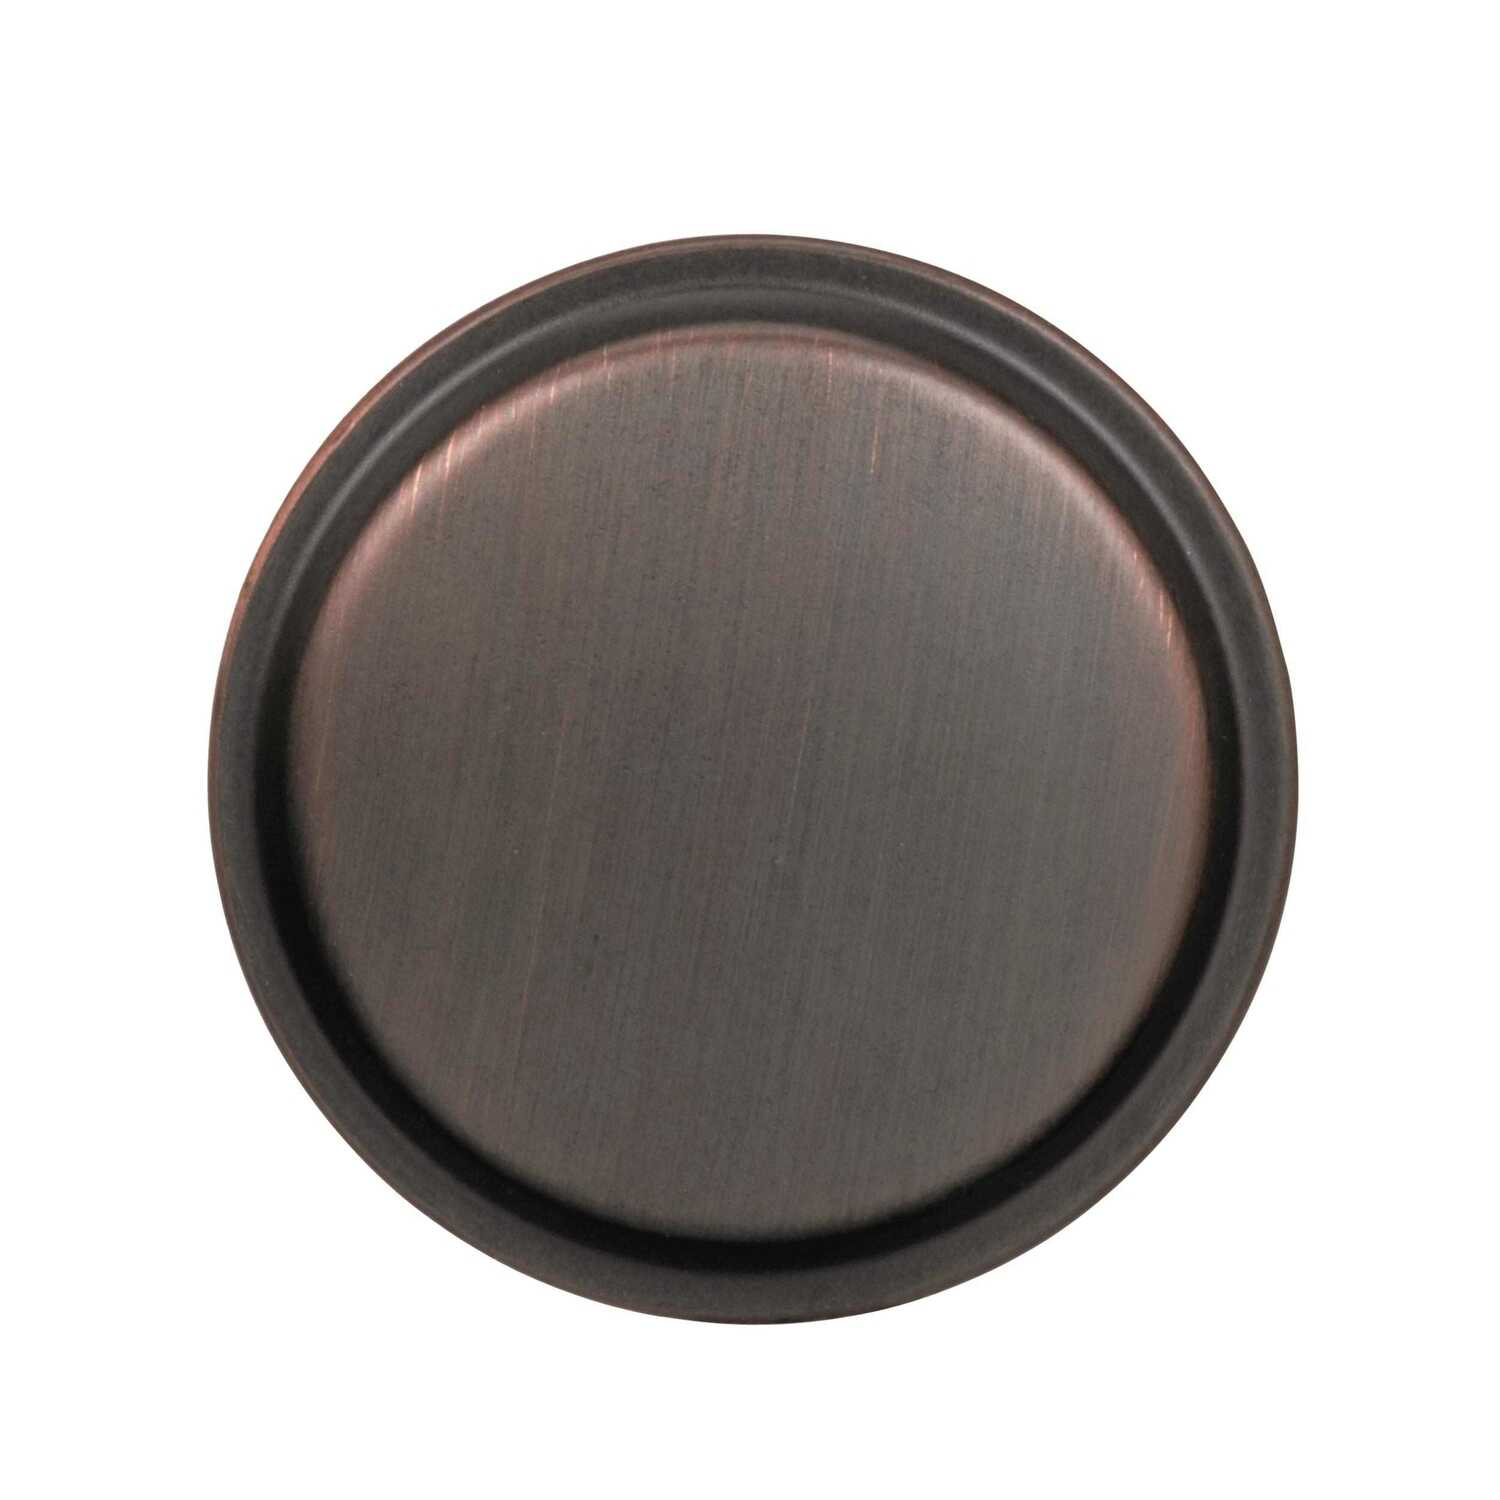 Amerock  Westerly Collection  Round  Cabinet Knob  1-3/16 in. Dia. 1-3/16 in. Oil Rubbed Bronze  1 p